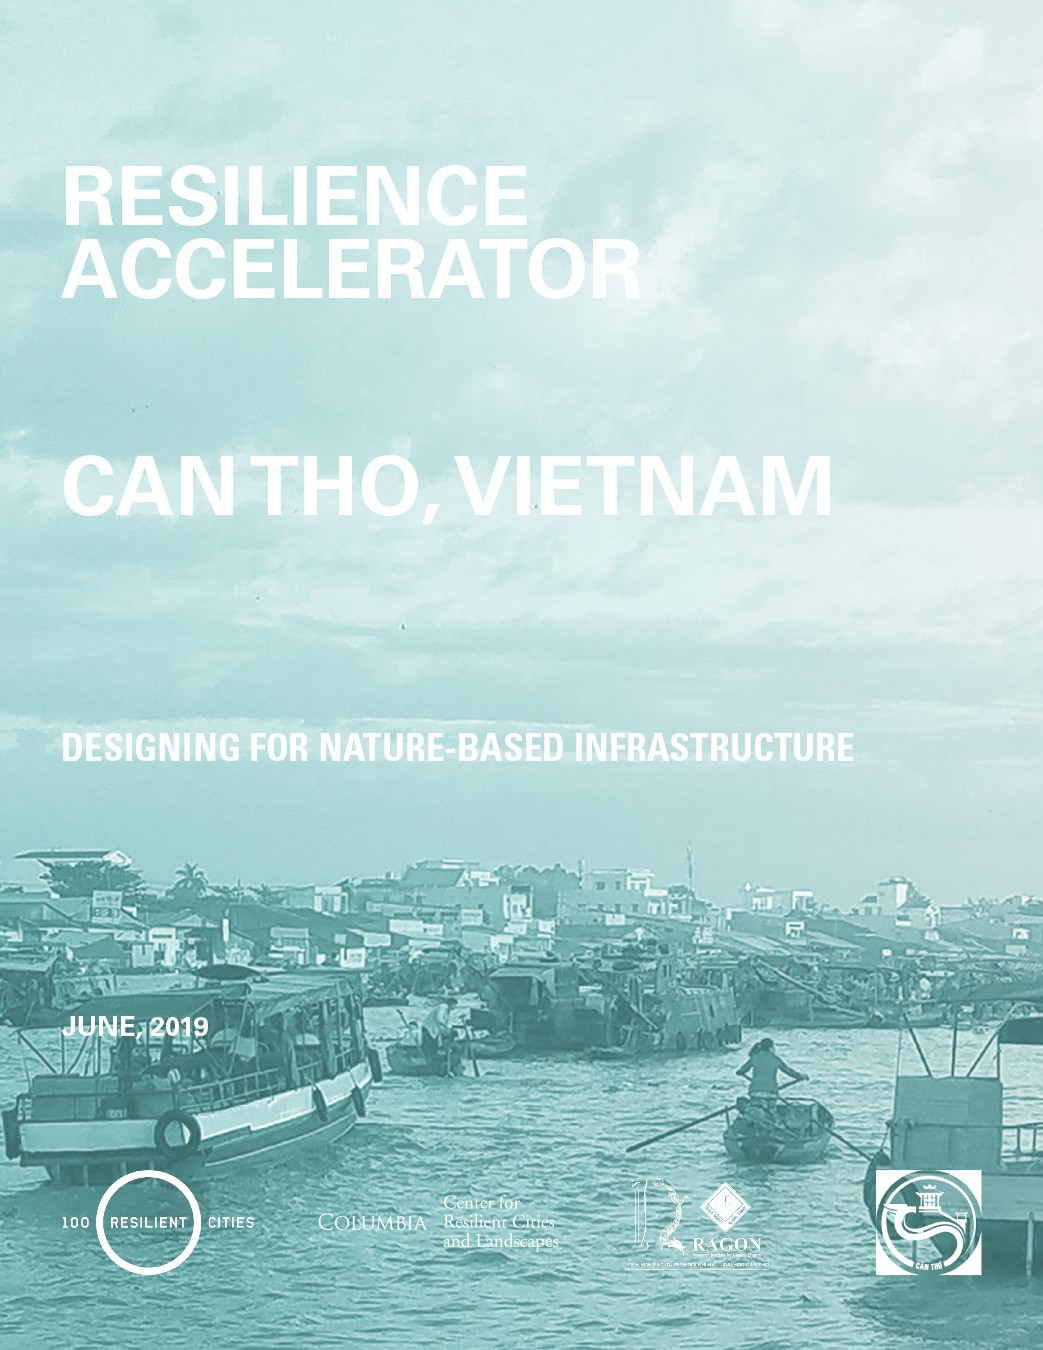 Can Tho Resilience Accelerator